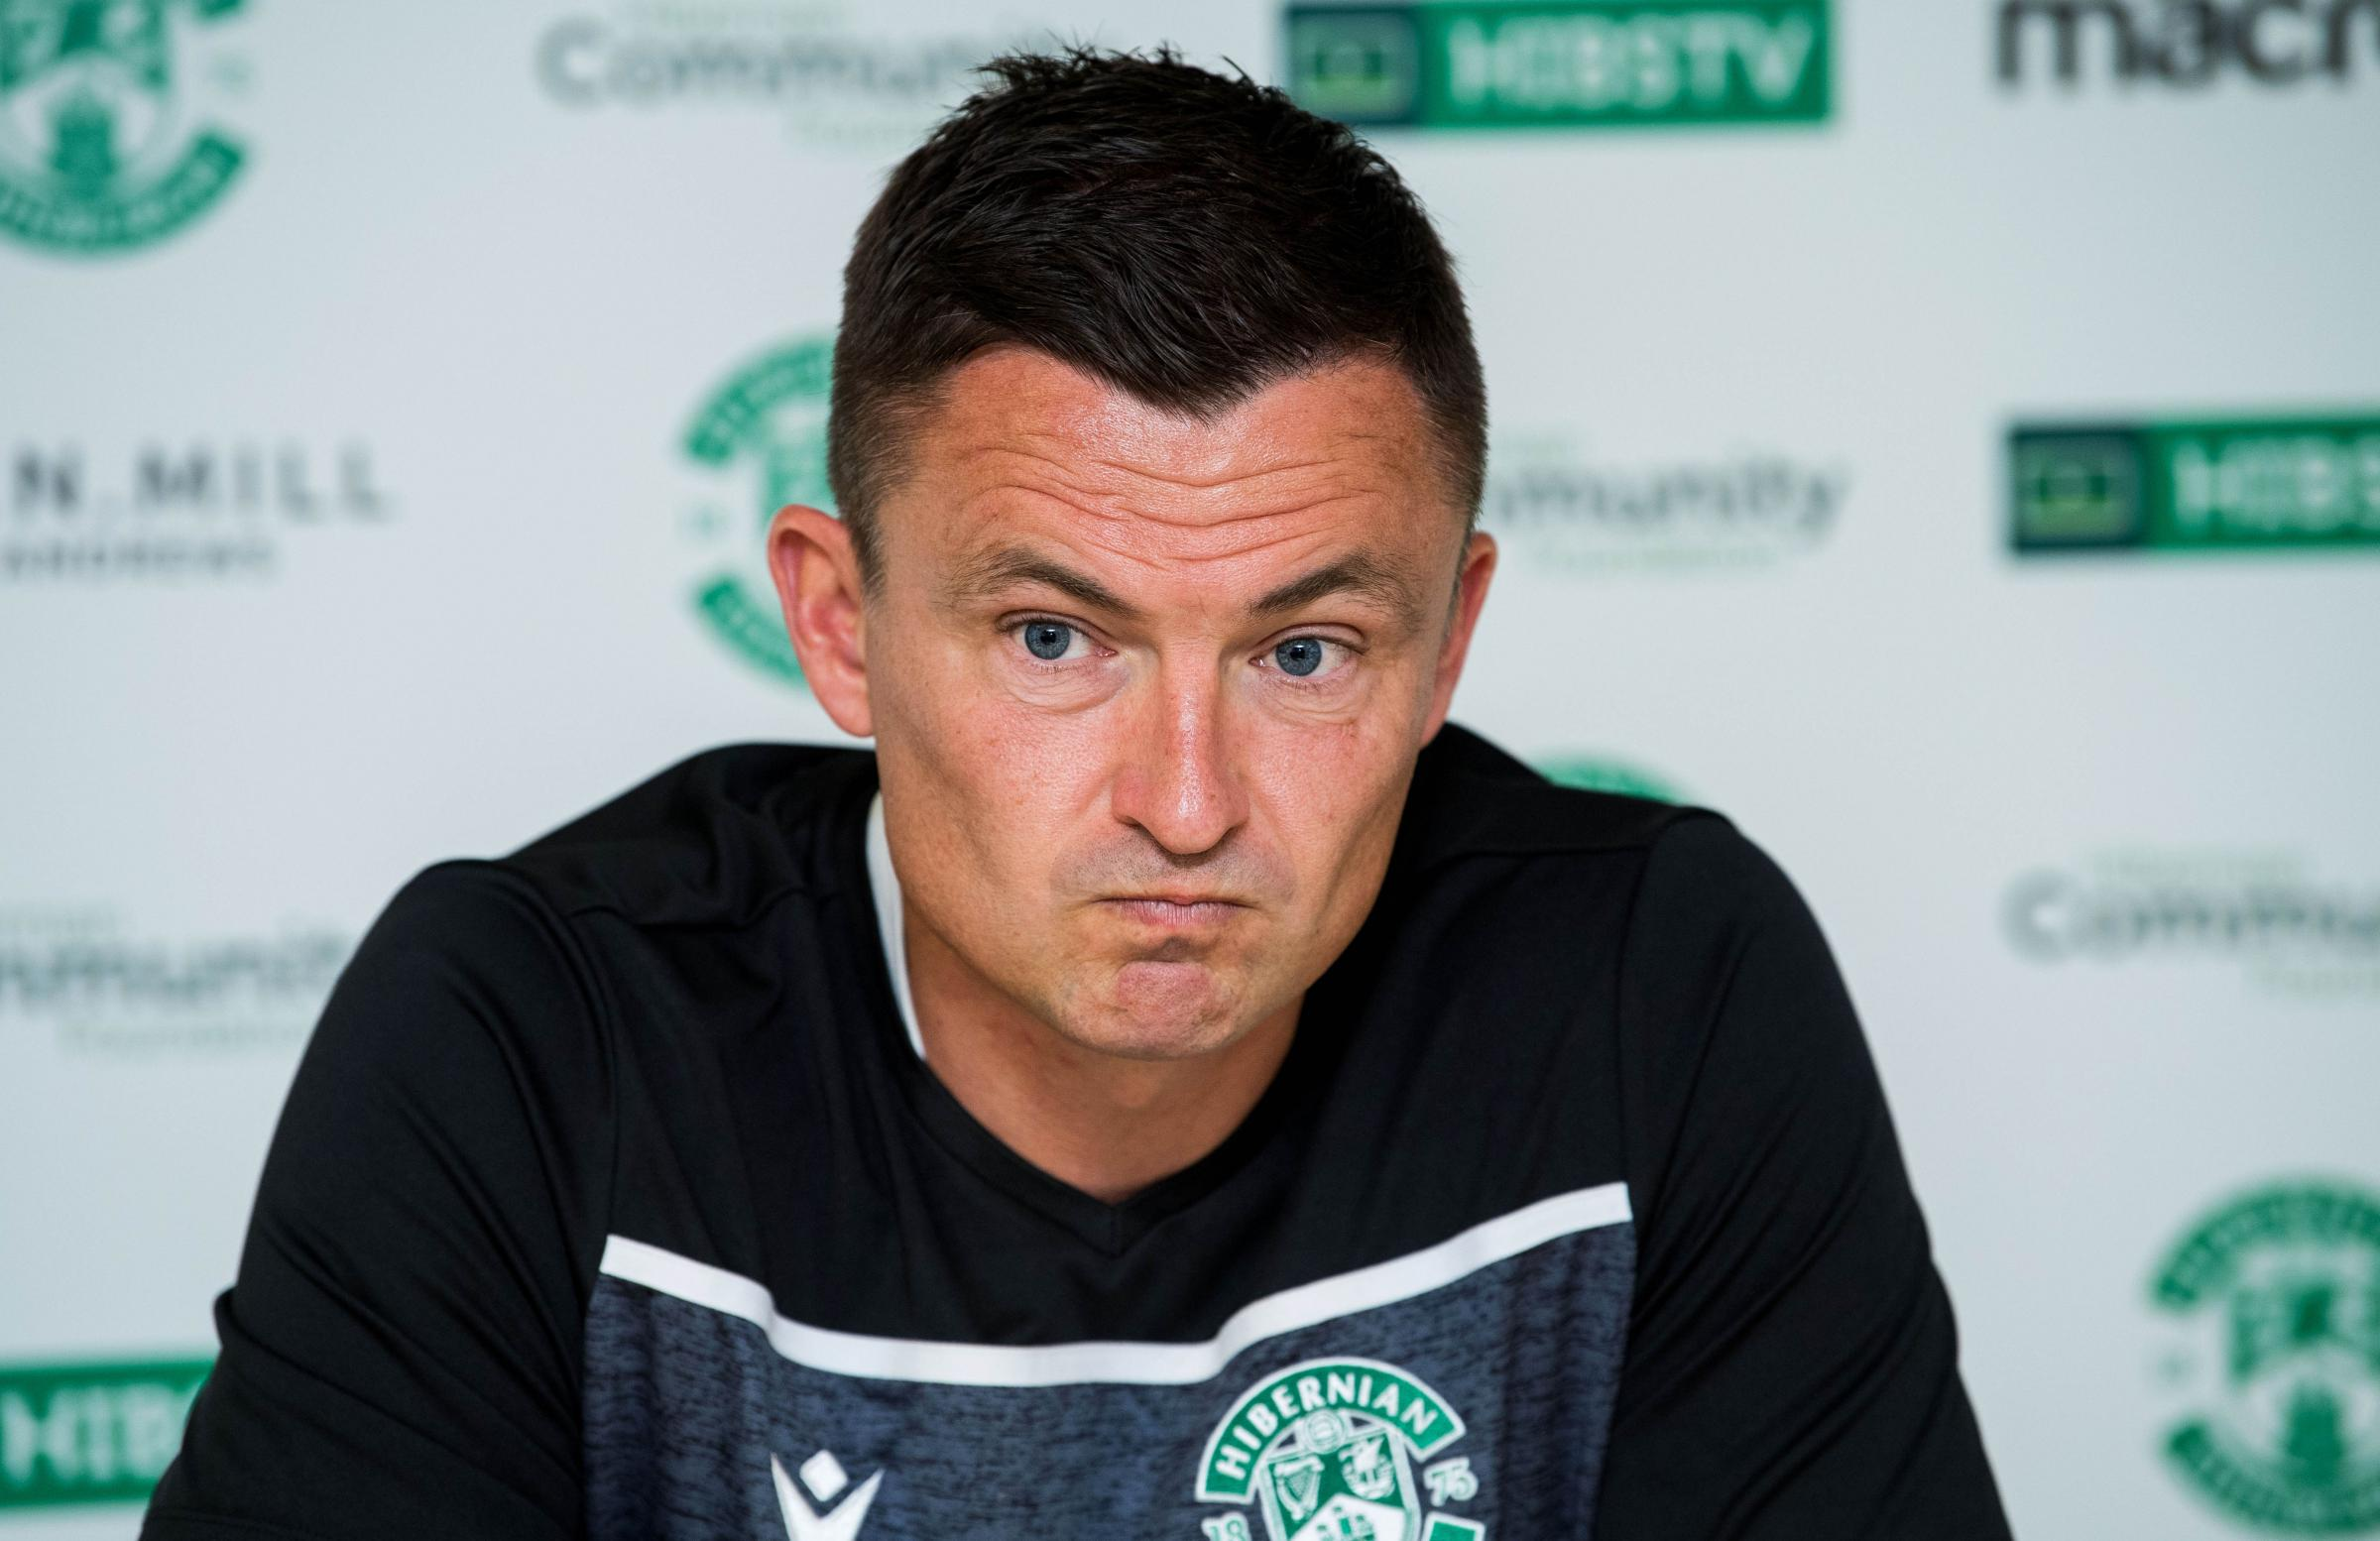 Hibernian boss Paul Heckingbottom would have Edinburgh derby 'every day' as he relishes Hearts clash